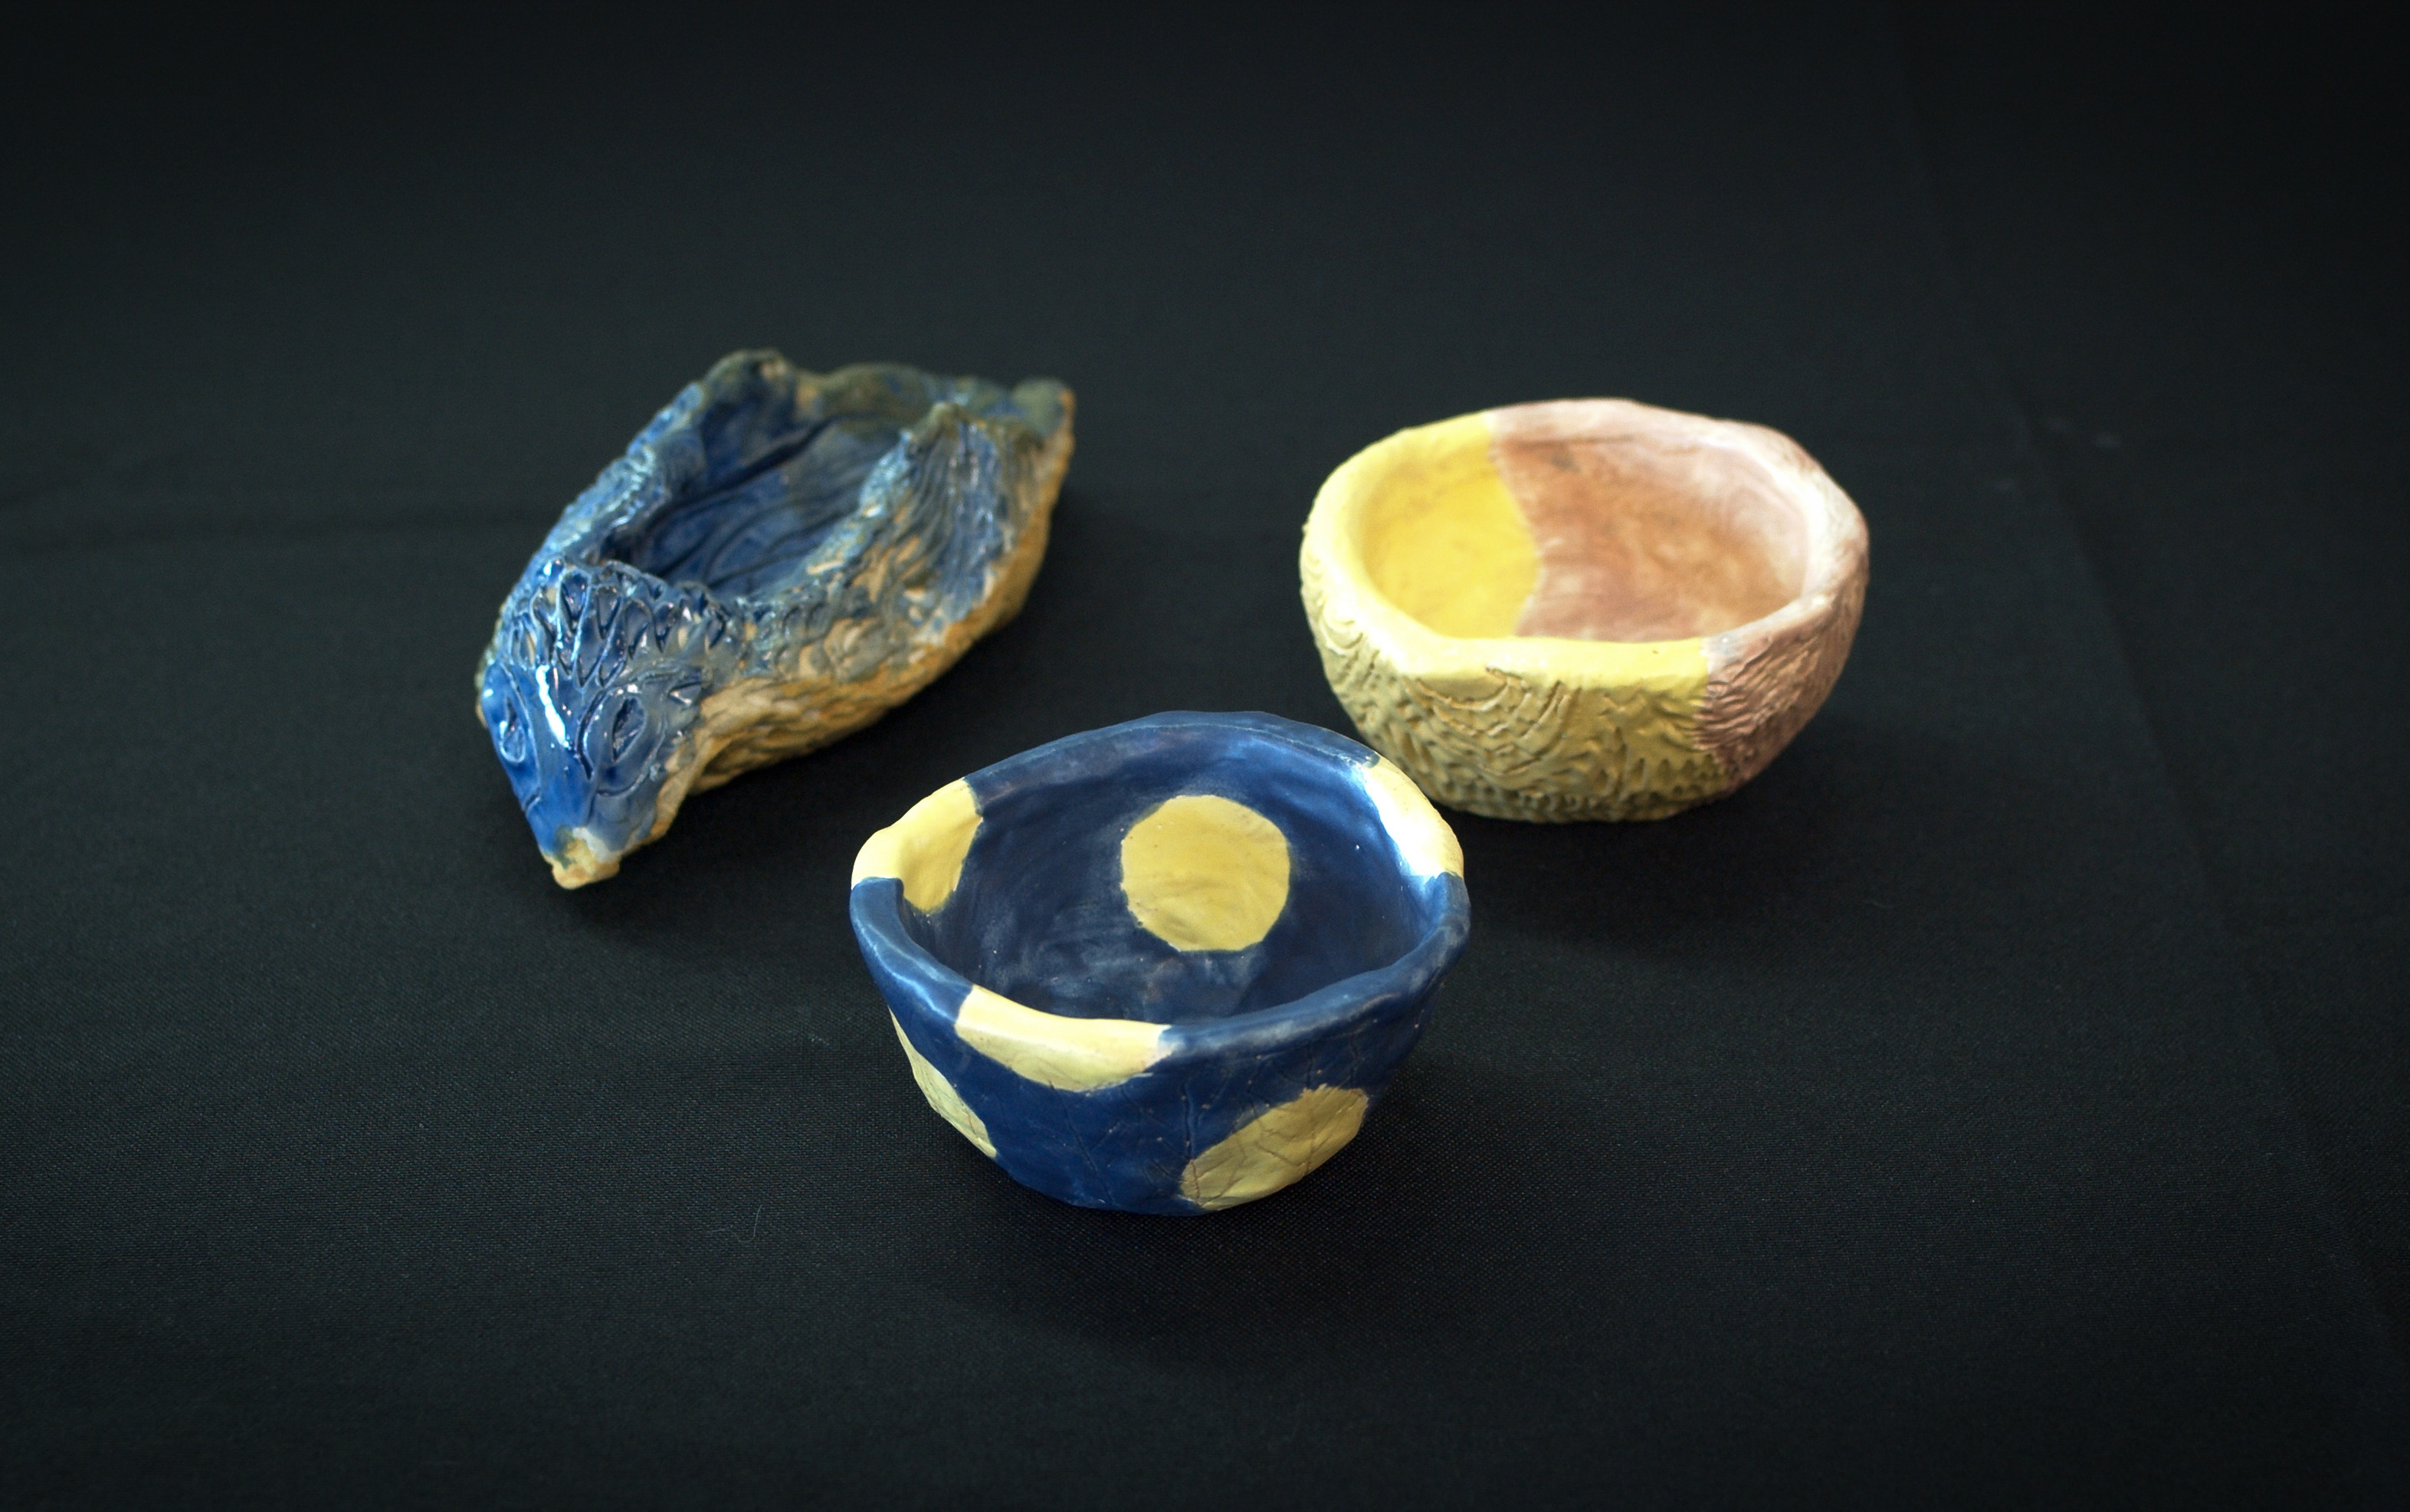 blue bird ceramic 3d spoon rest and two small bowls, one with yellow and pink polka dots and the other with navy and yellow polka dots